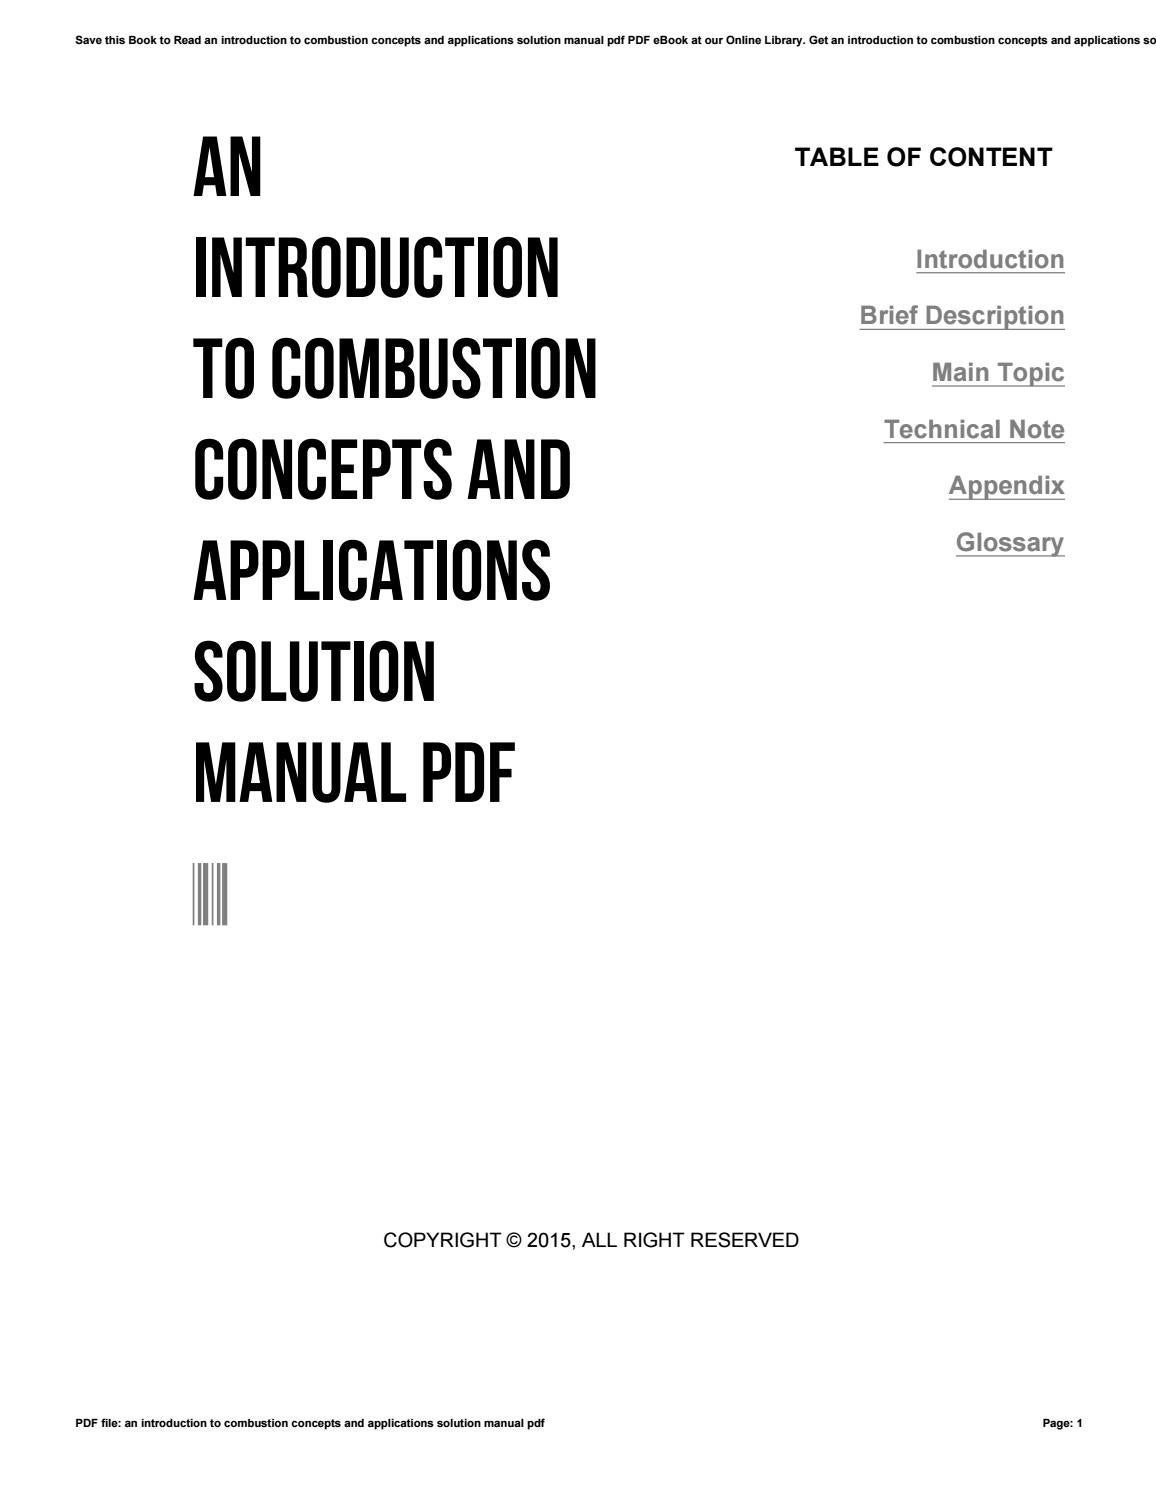 An introduction to combustion concepts and applications